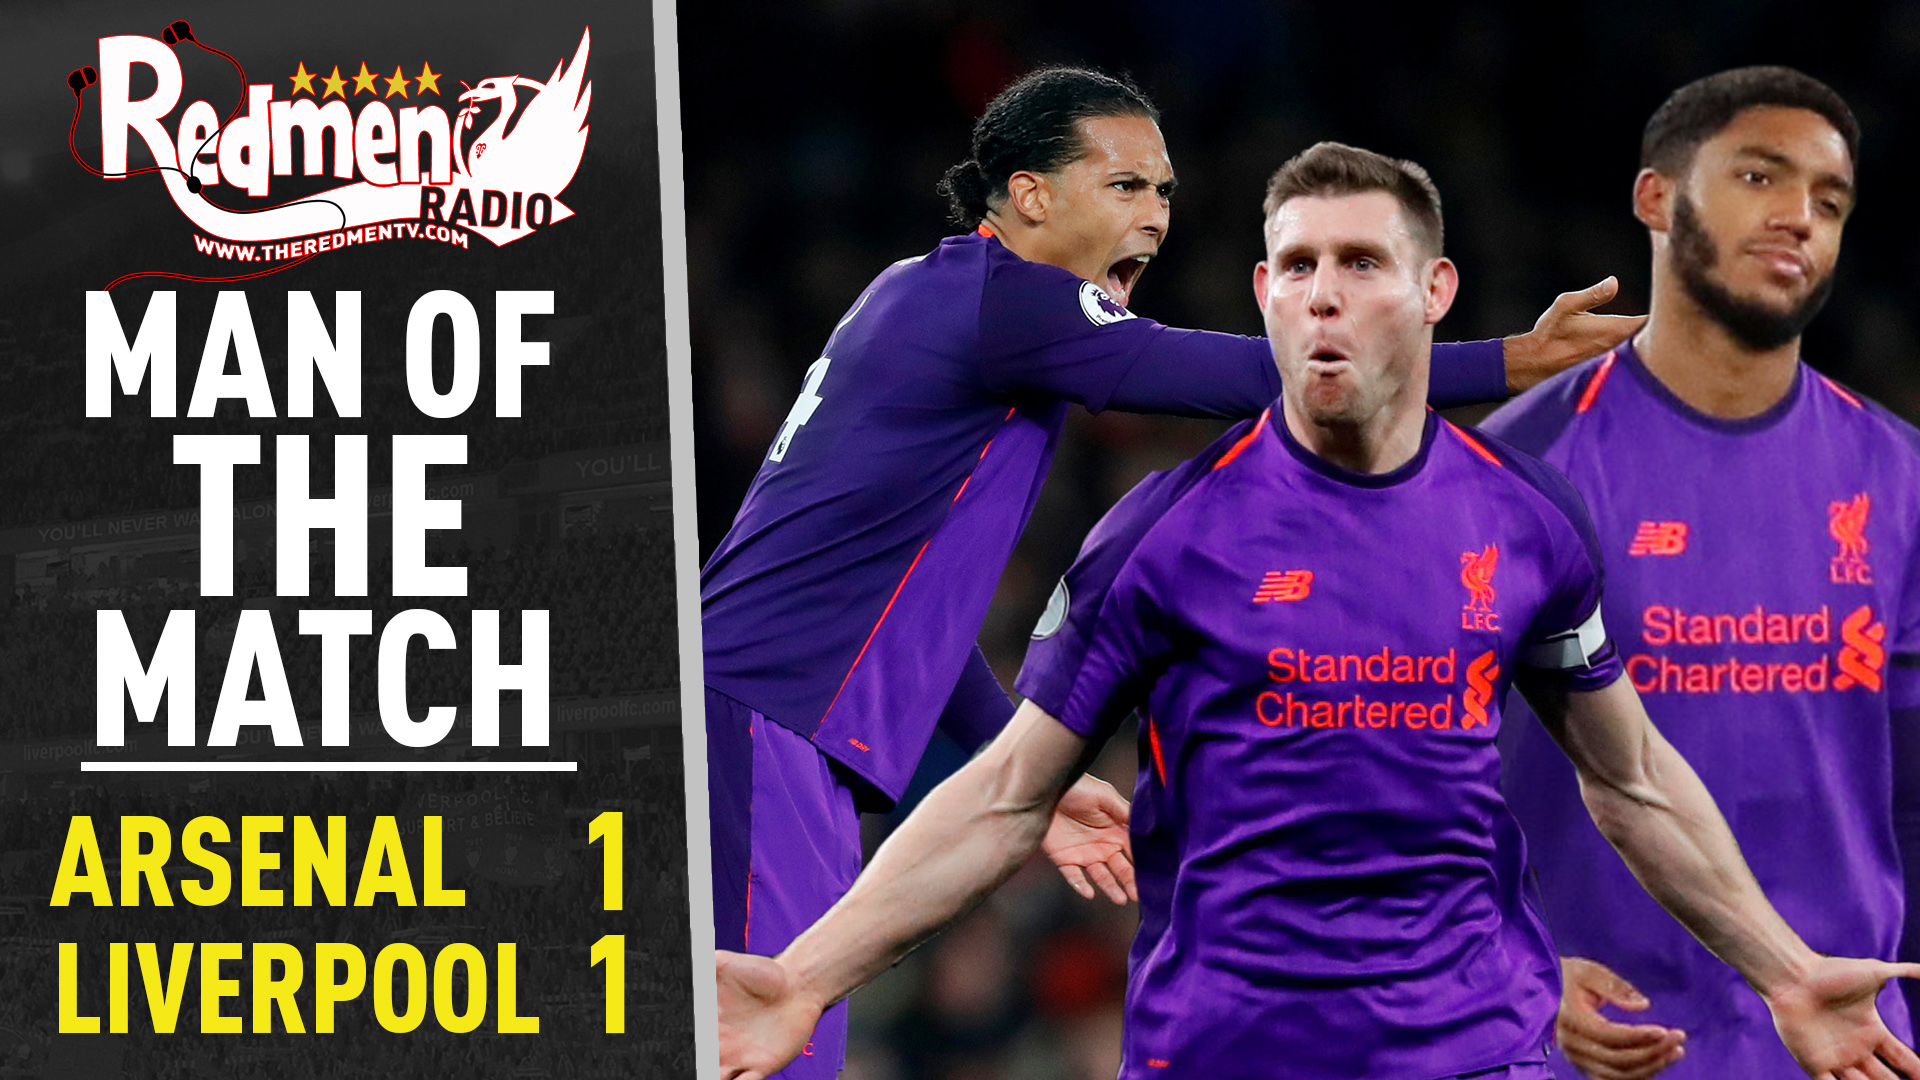 Arsenal 1-1 Liverpool | Man of the Match Podcast - The Redmen TV